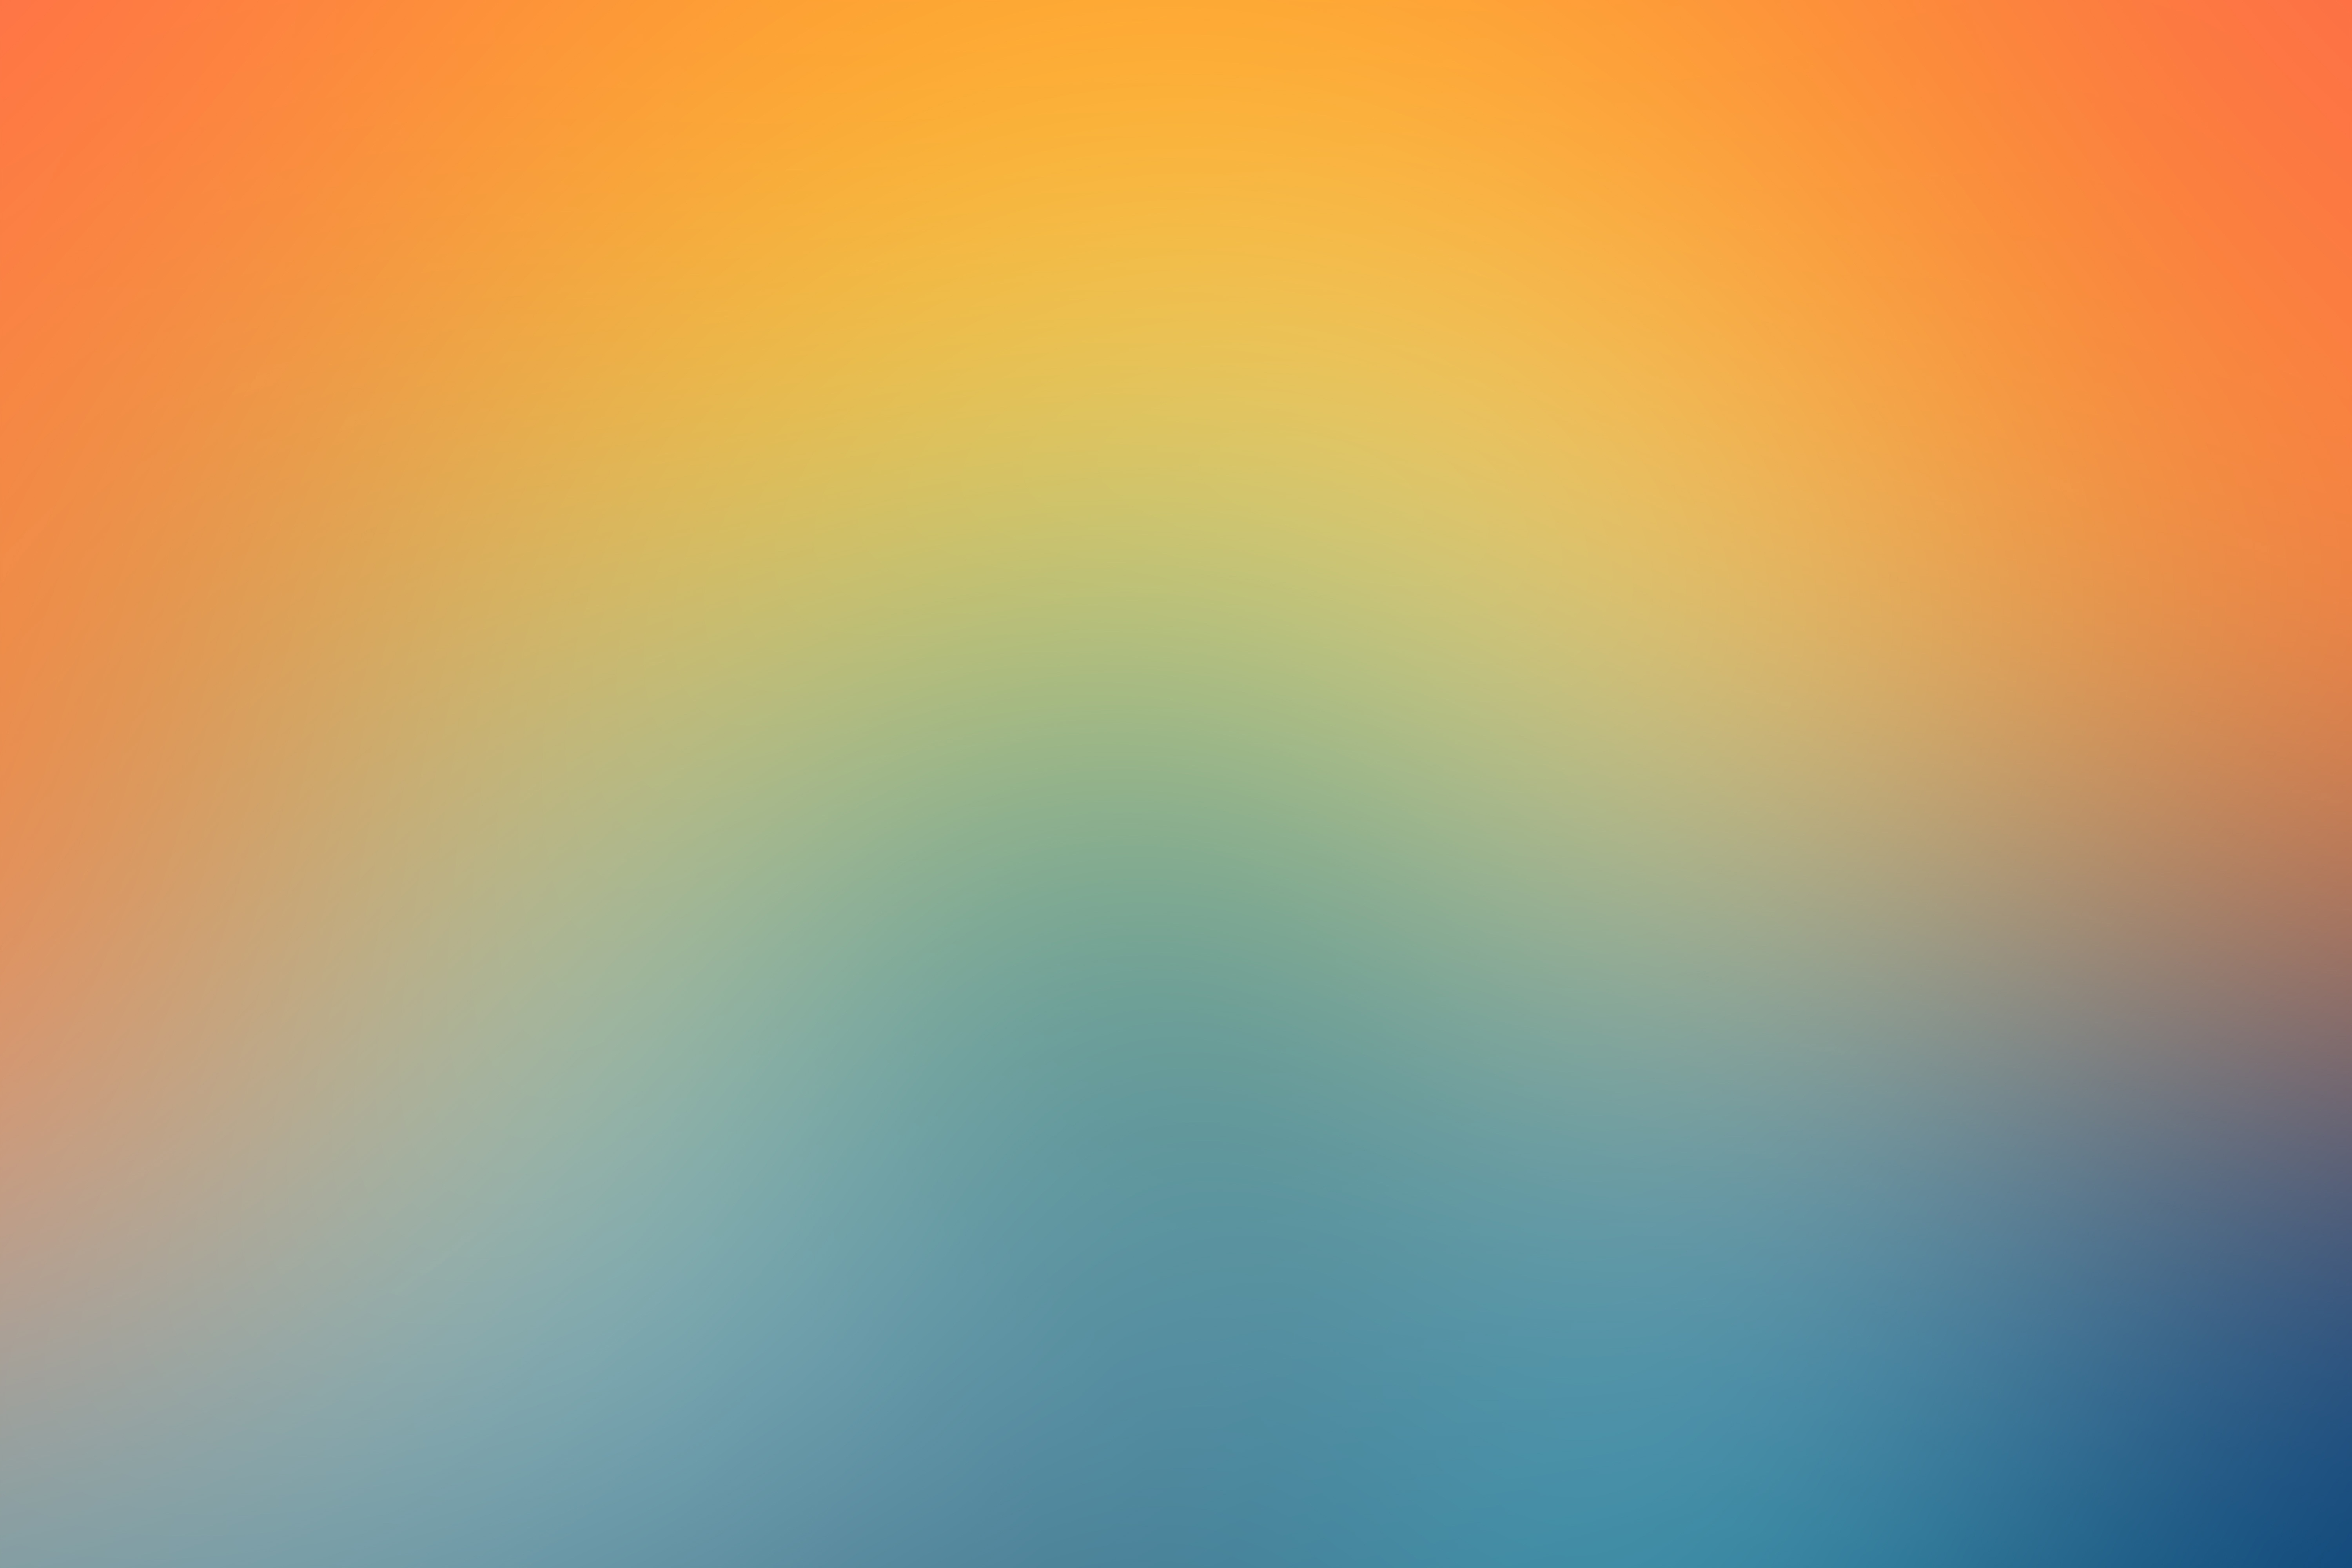 123285 download wallpaper Textures, Texture, Blur, Smooth, Gradient, Mixing, Soft screensavers and pictures for free